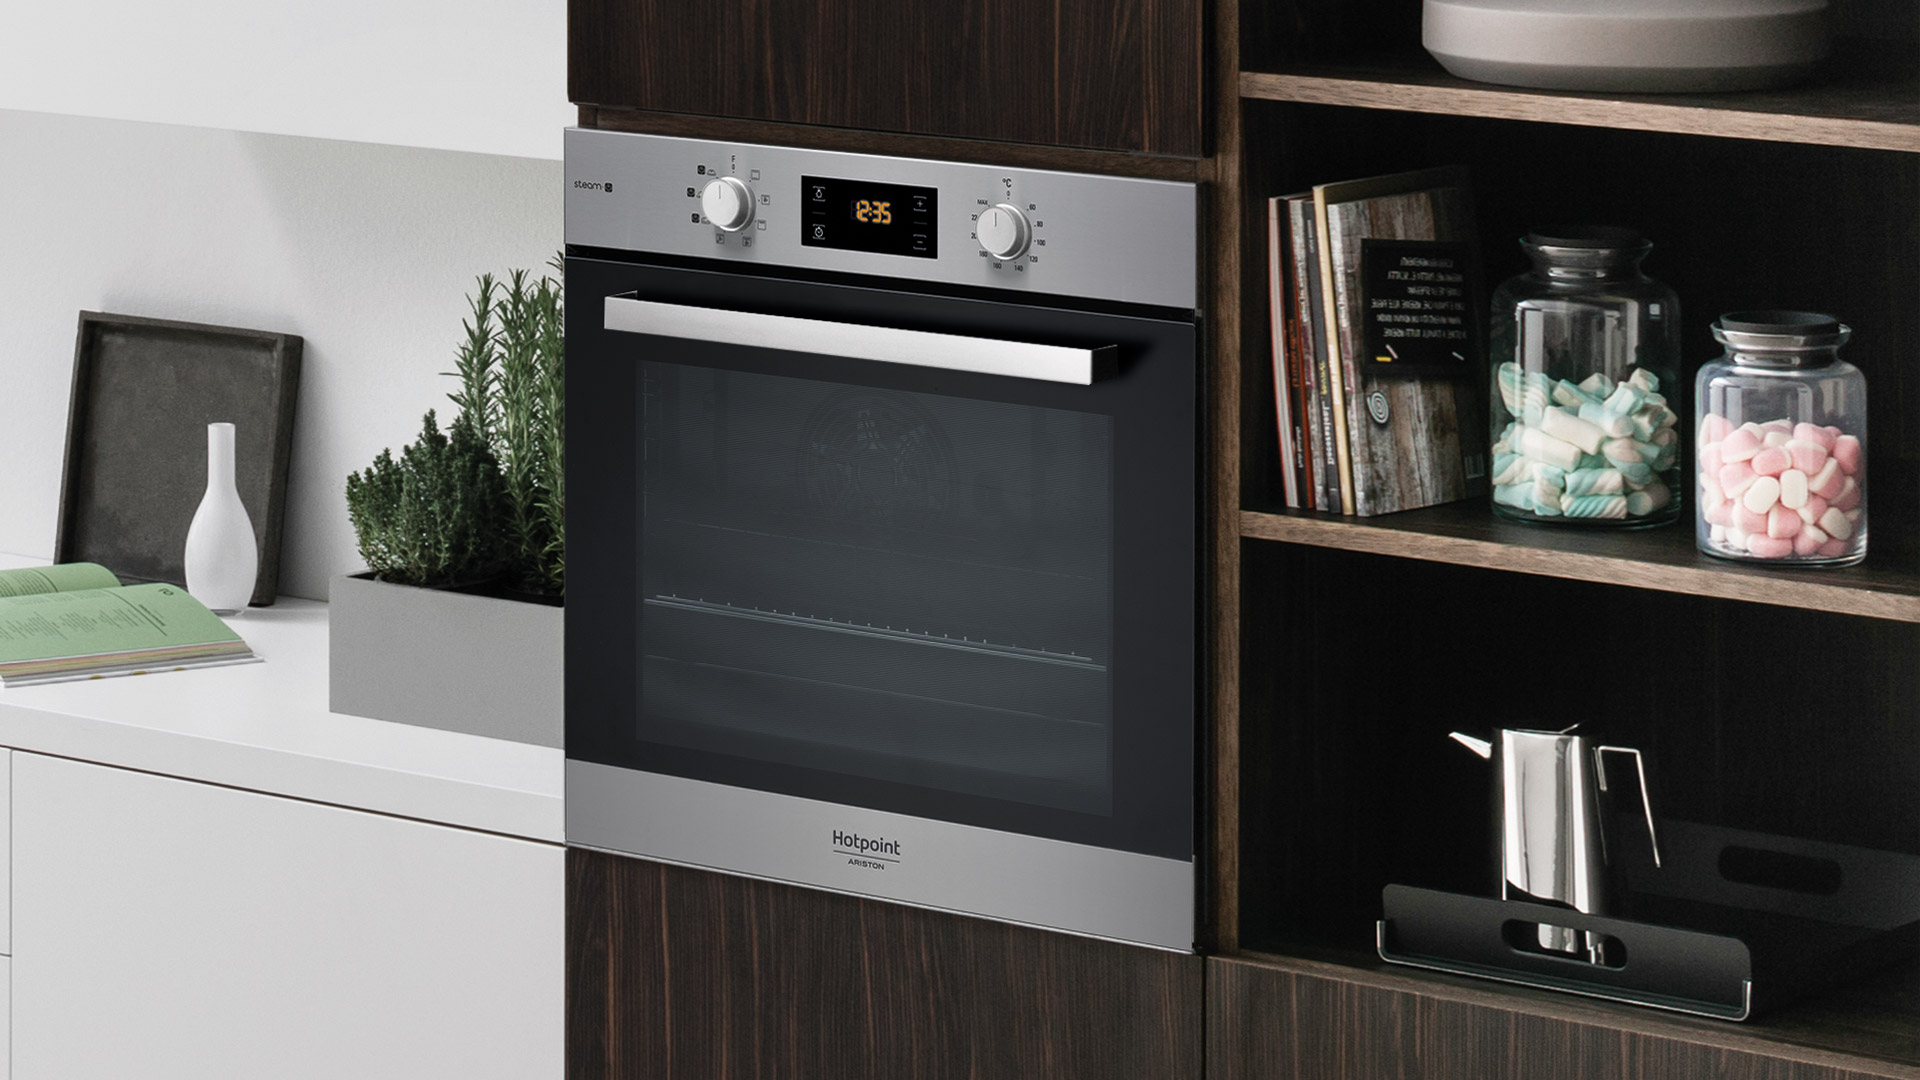 You can boost the flavour of your food threefold with a touch of steam from the new Hotpoint oven - Cucine LUBE